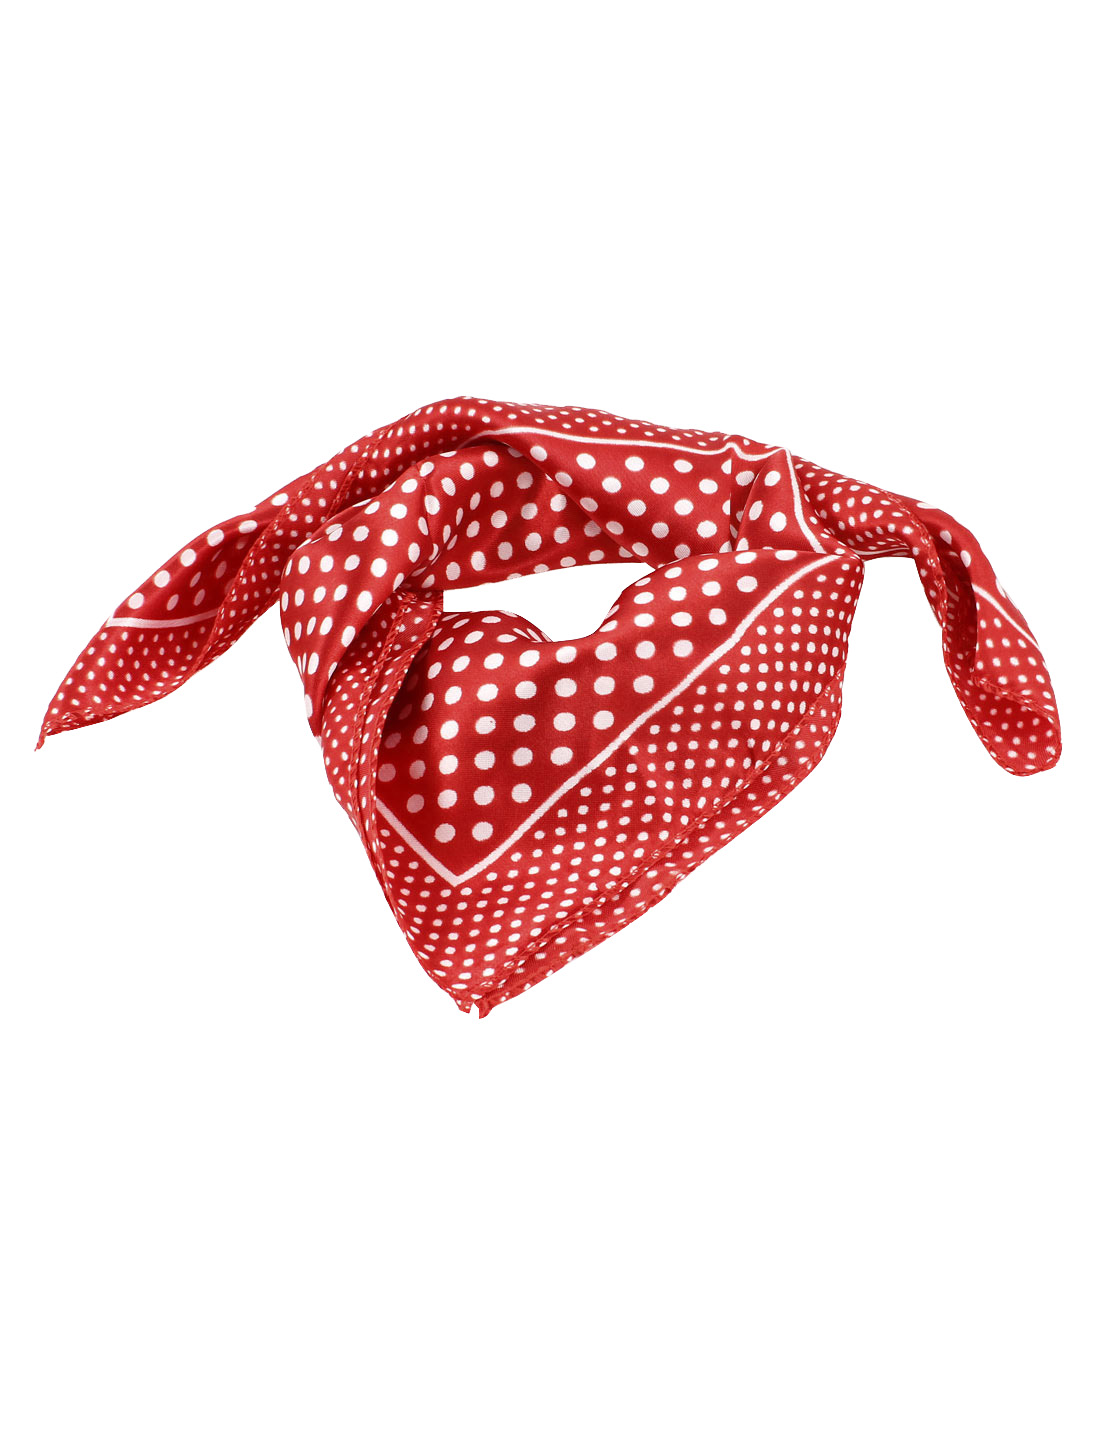 White Dots Pattern Polyester Red Neck Scarf Kerchief for Women